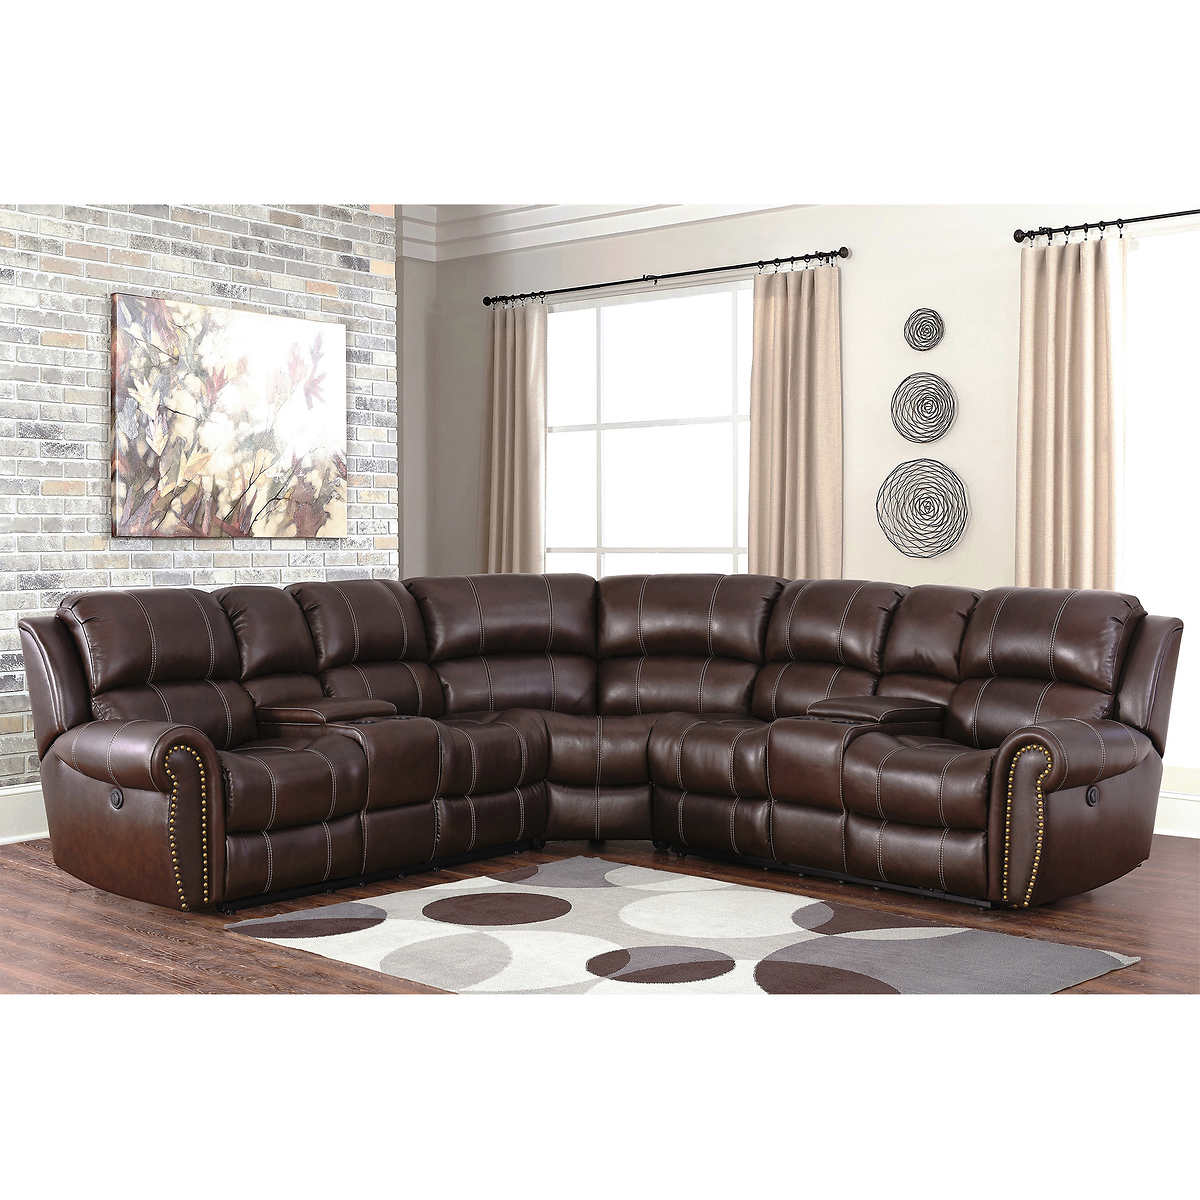 leather reclining living room sets living room sets leather recliner 18744